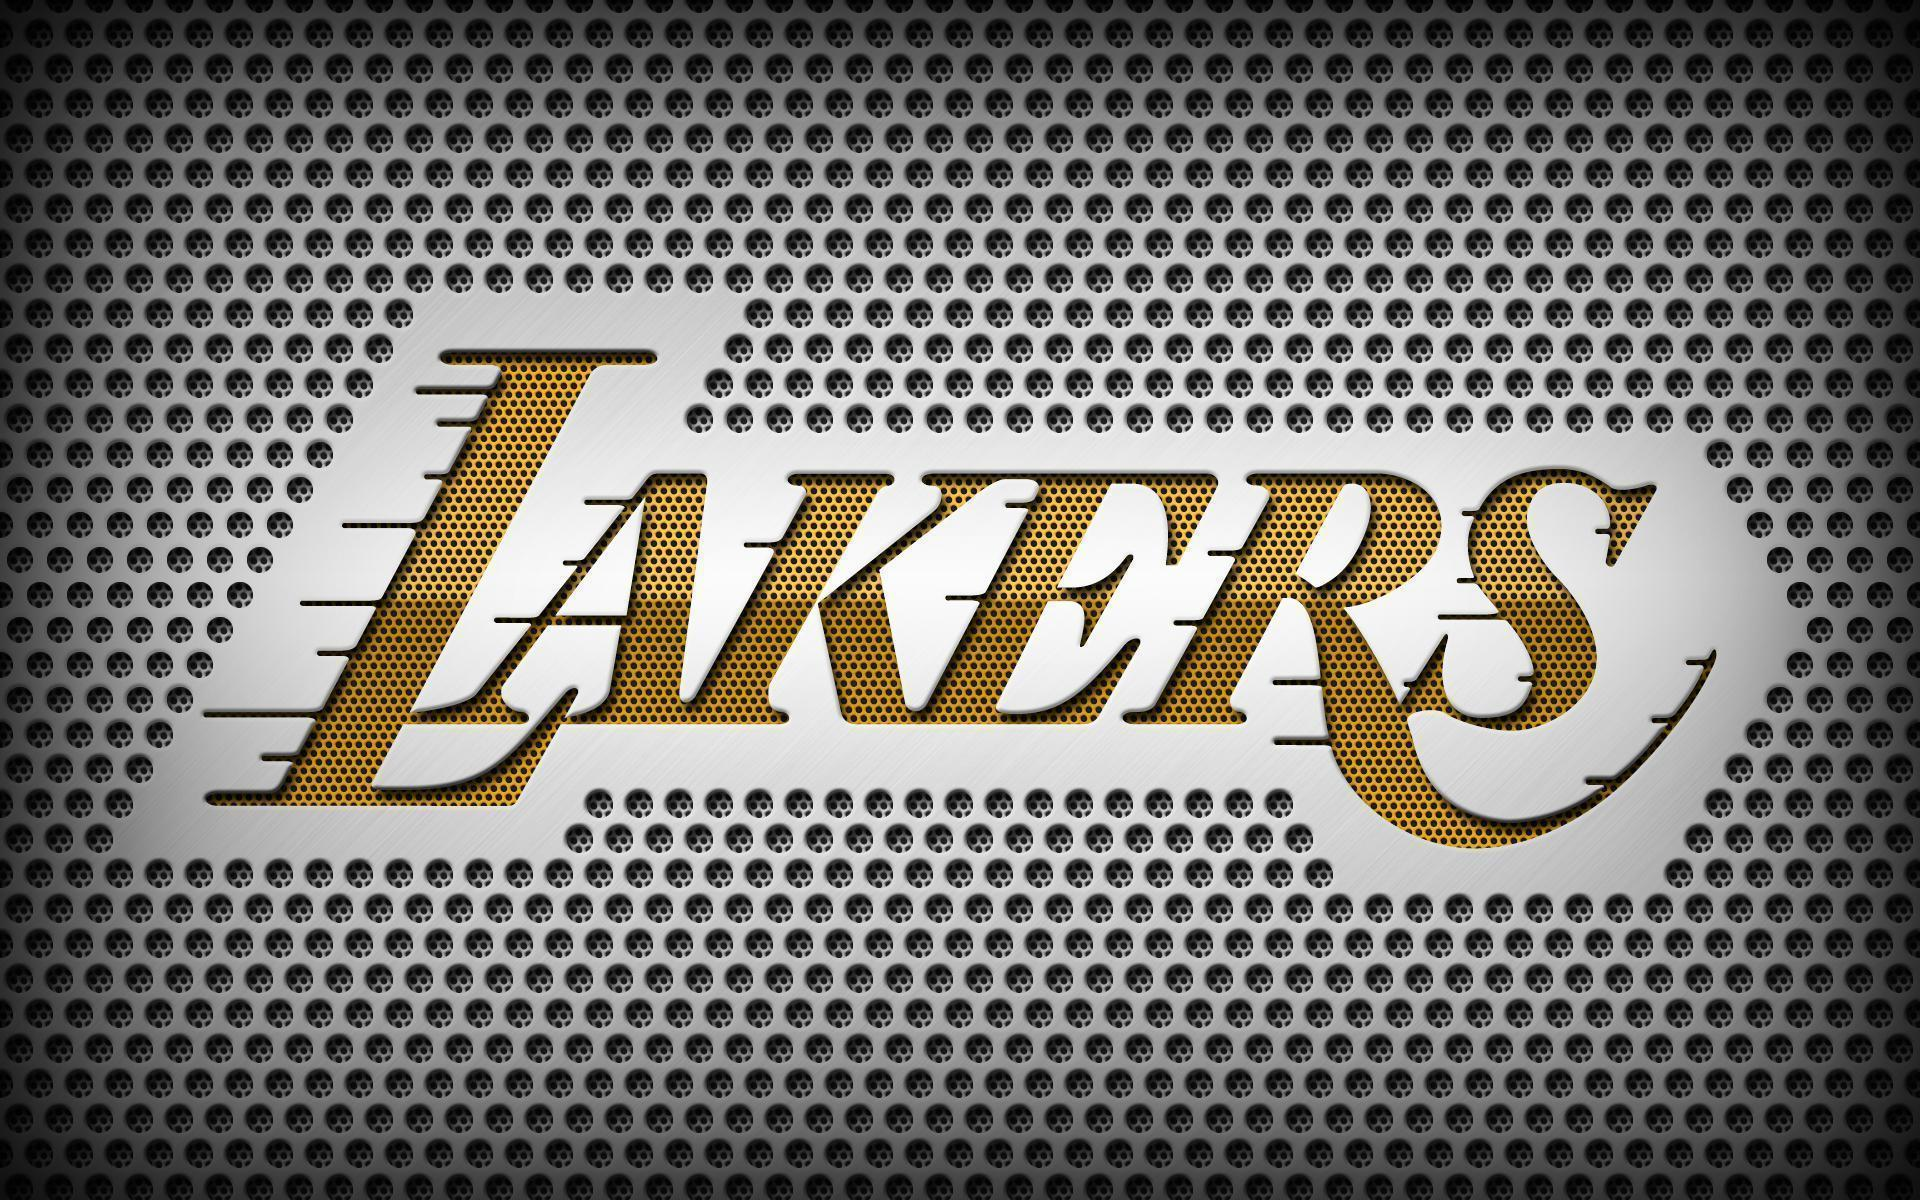 Lakers wallpapers wallpaper cave awesome lakers wallpaper images 15306 wallpaper wallpaper voltagebd Choice Image